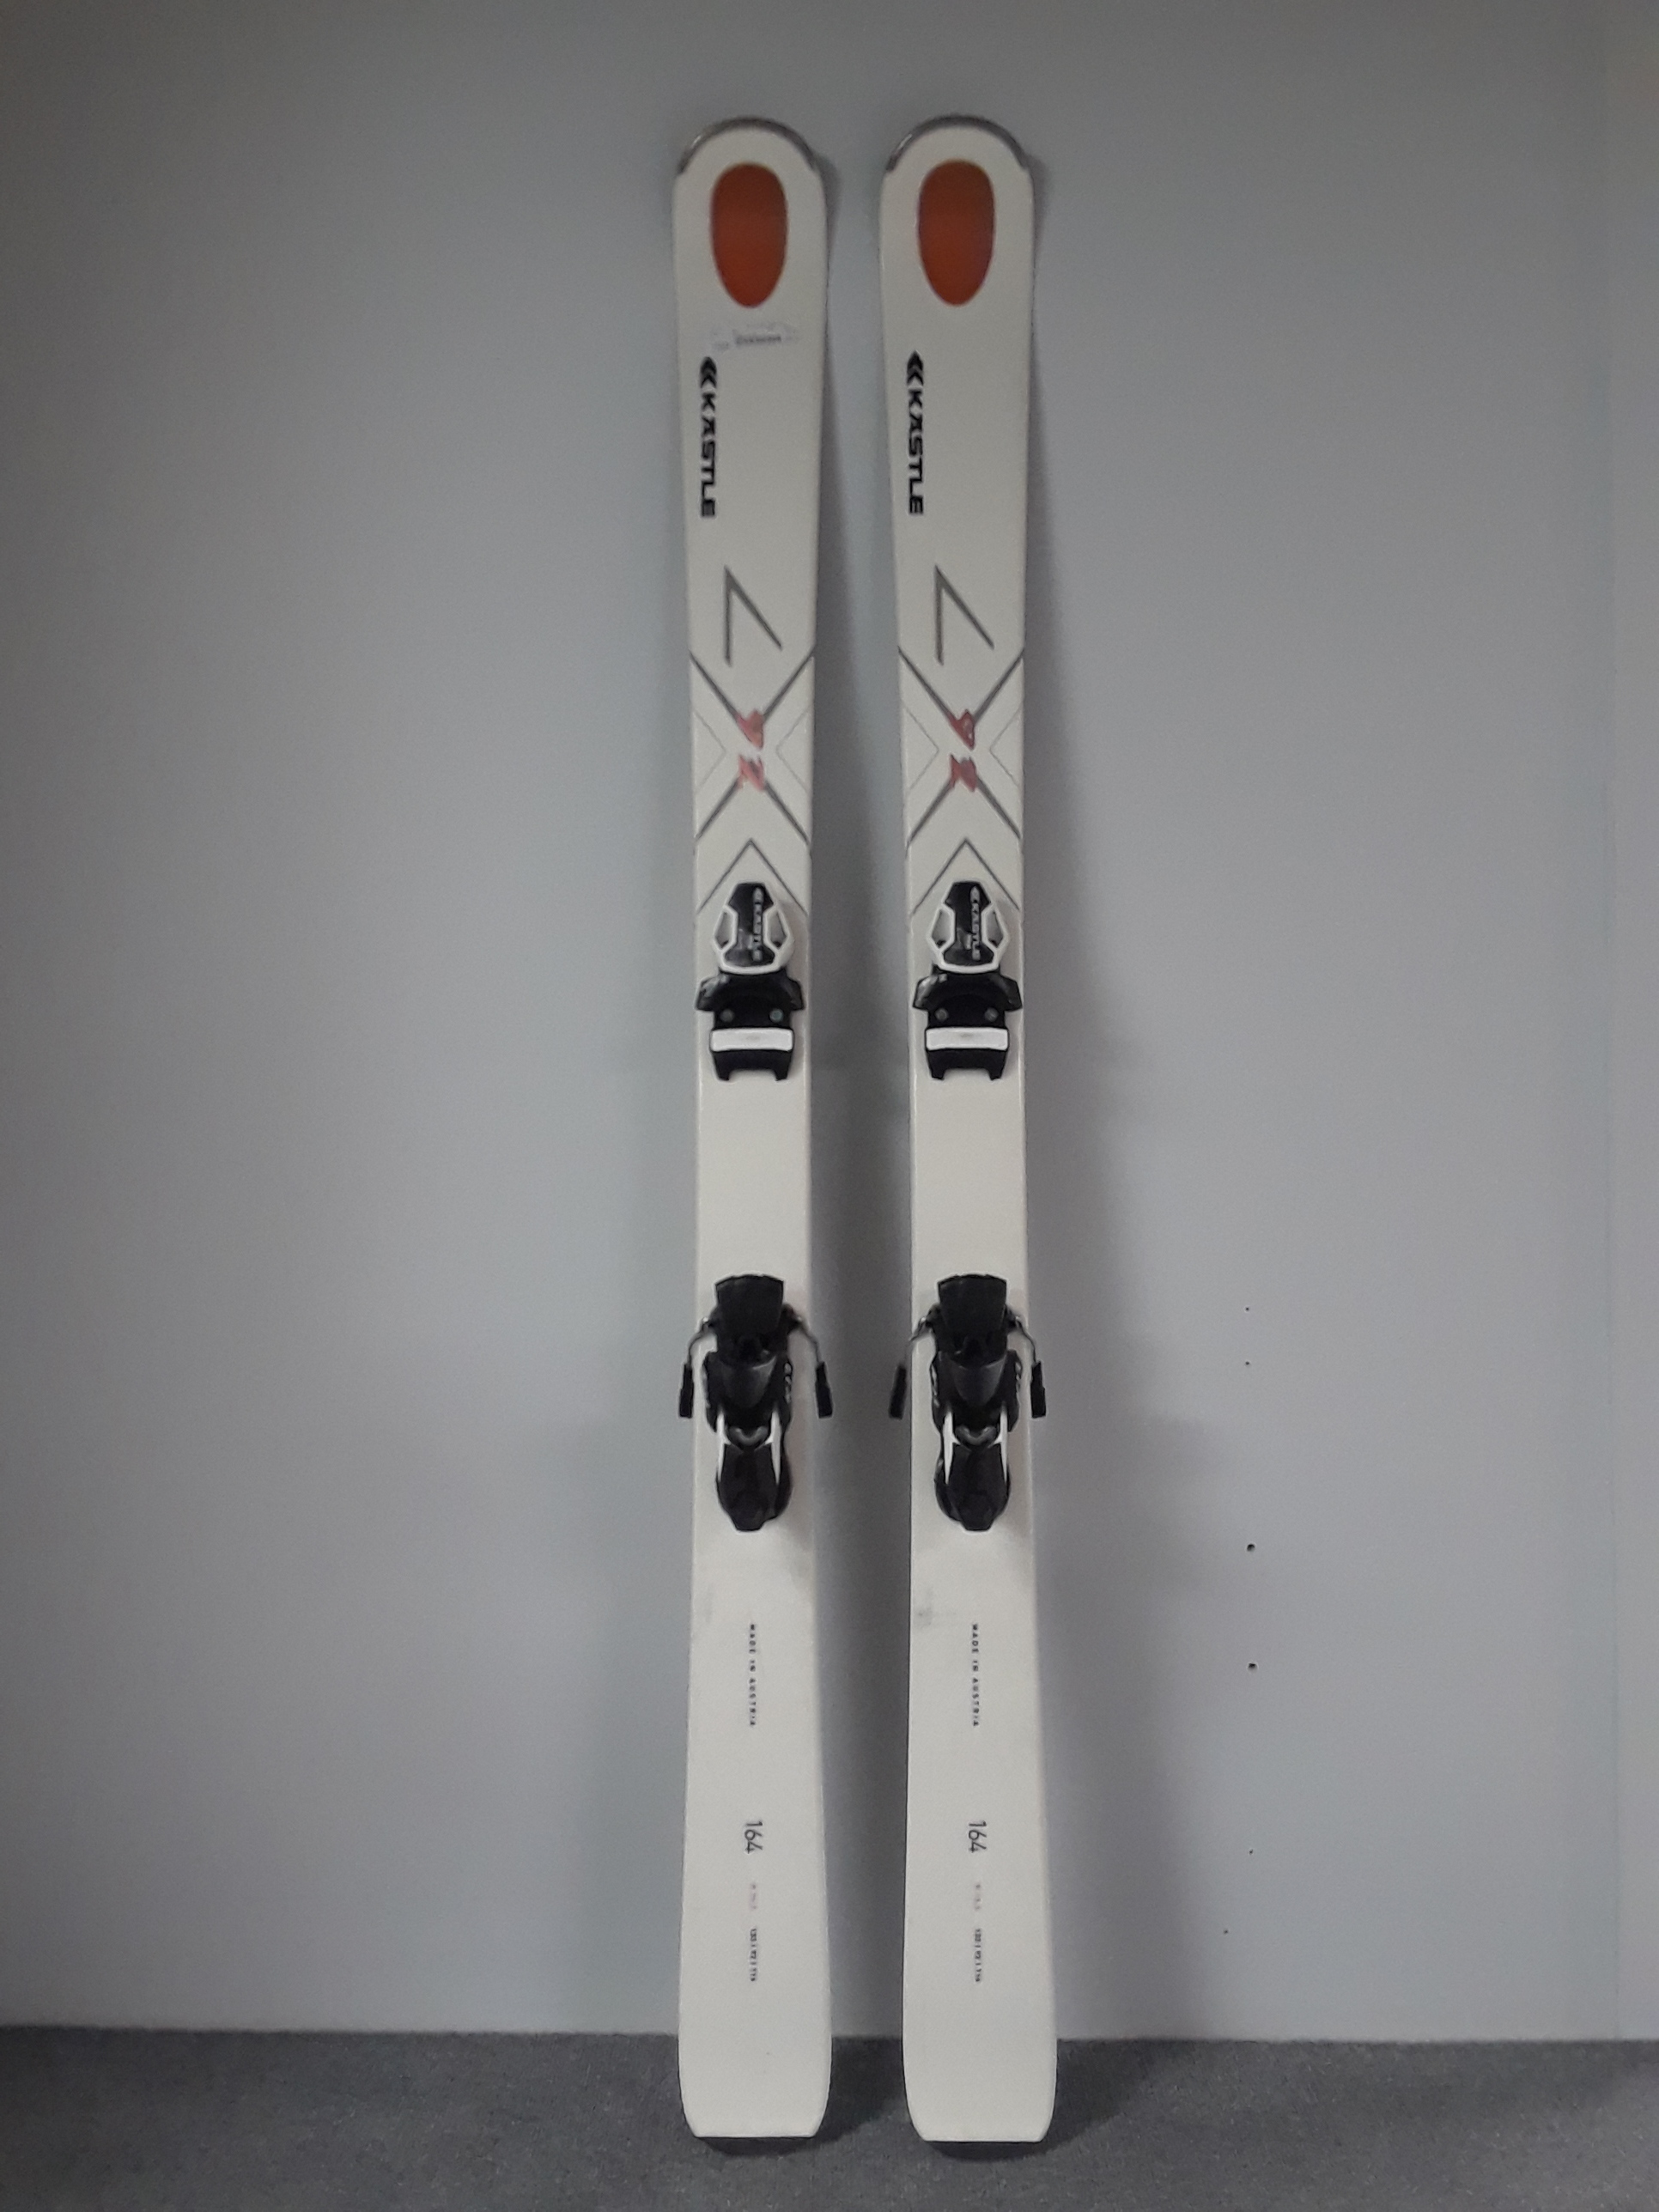 Here's a pair for those deep in-bounds days. The 164 Kastle LX 92 is wide enough to provide the float needed in deep pow but flexible enough to where you don't have to be hoss to turn them. MSRP for the planks is listed at $1,099 (not including binding) and we have the price at $499.